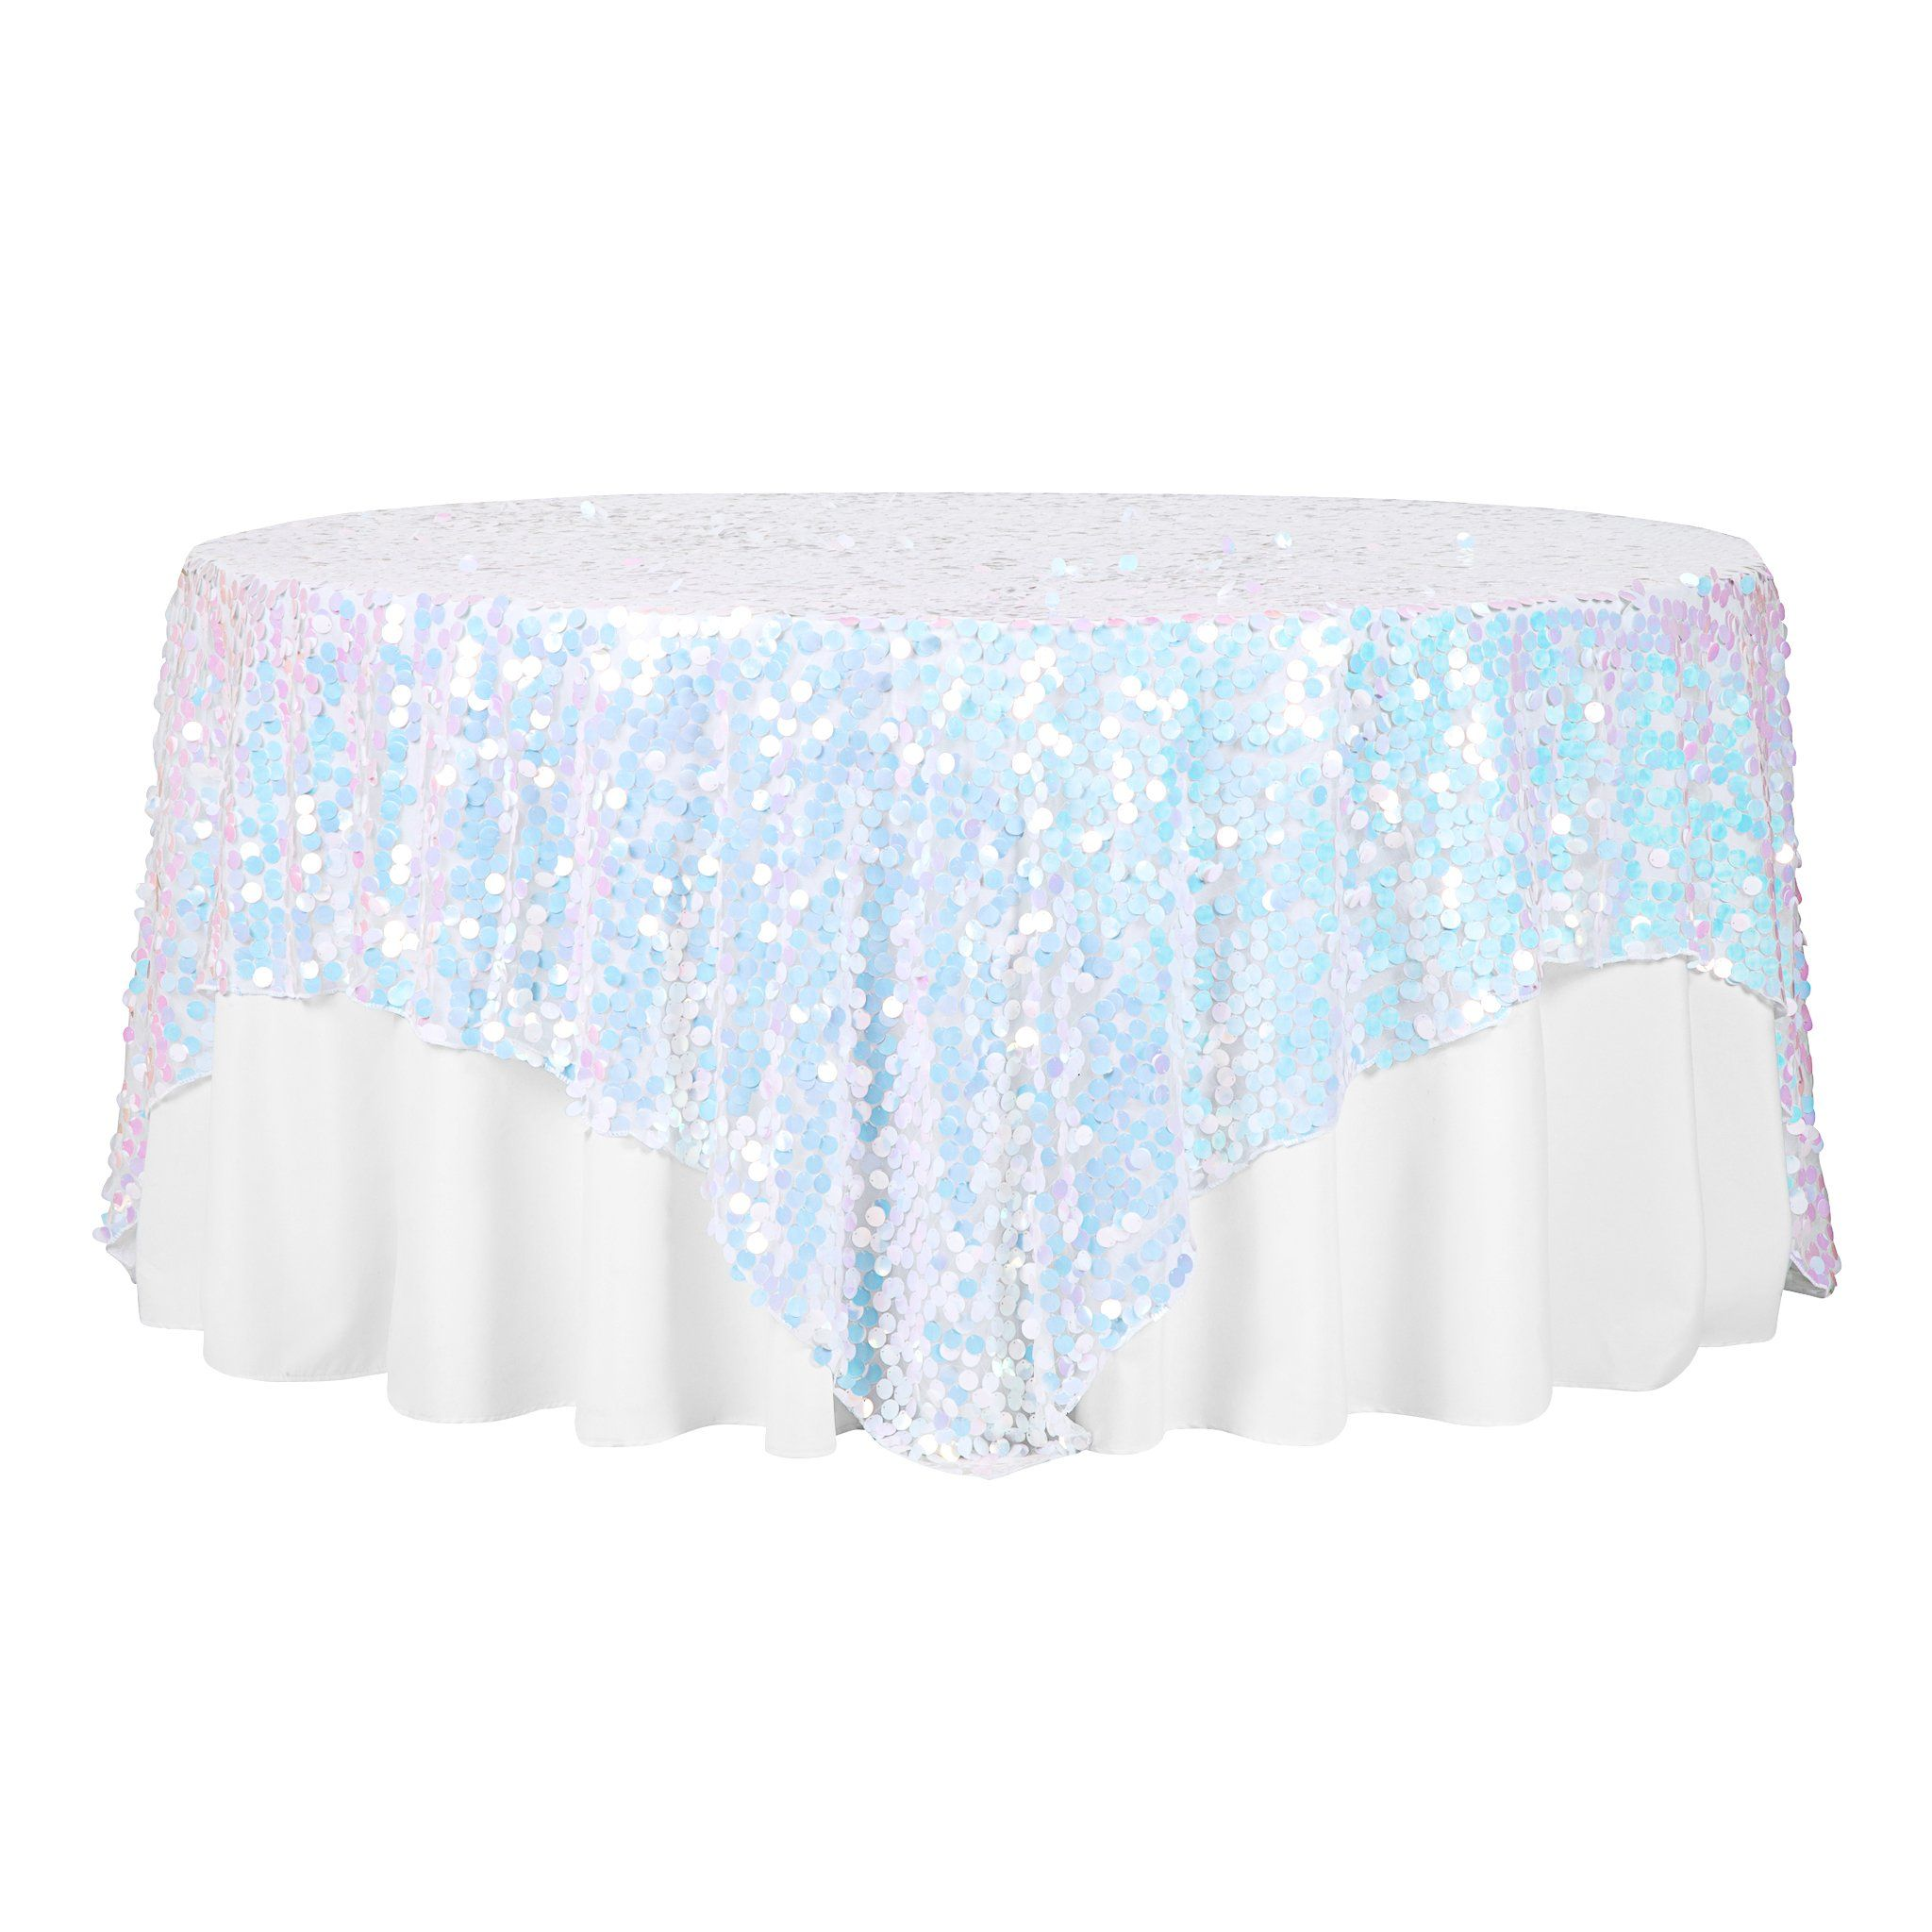 "Large Payette Sequin Table Overlay Topper 90""x90"" Square - Iridescent White"